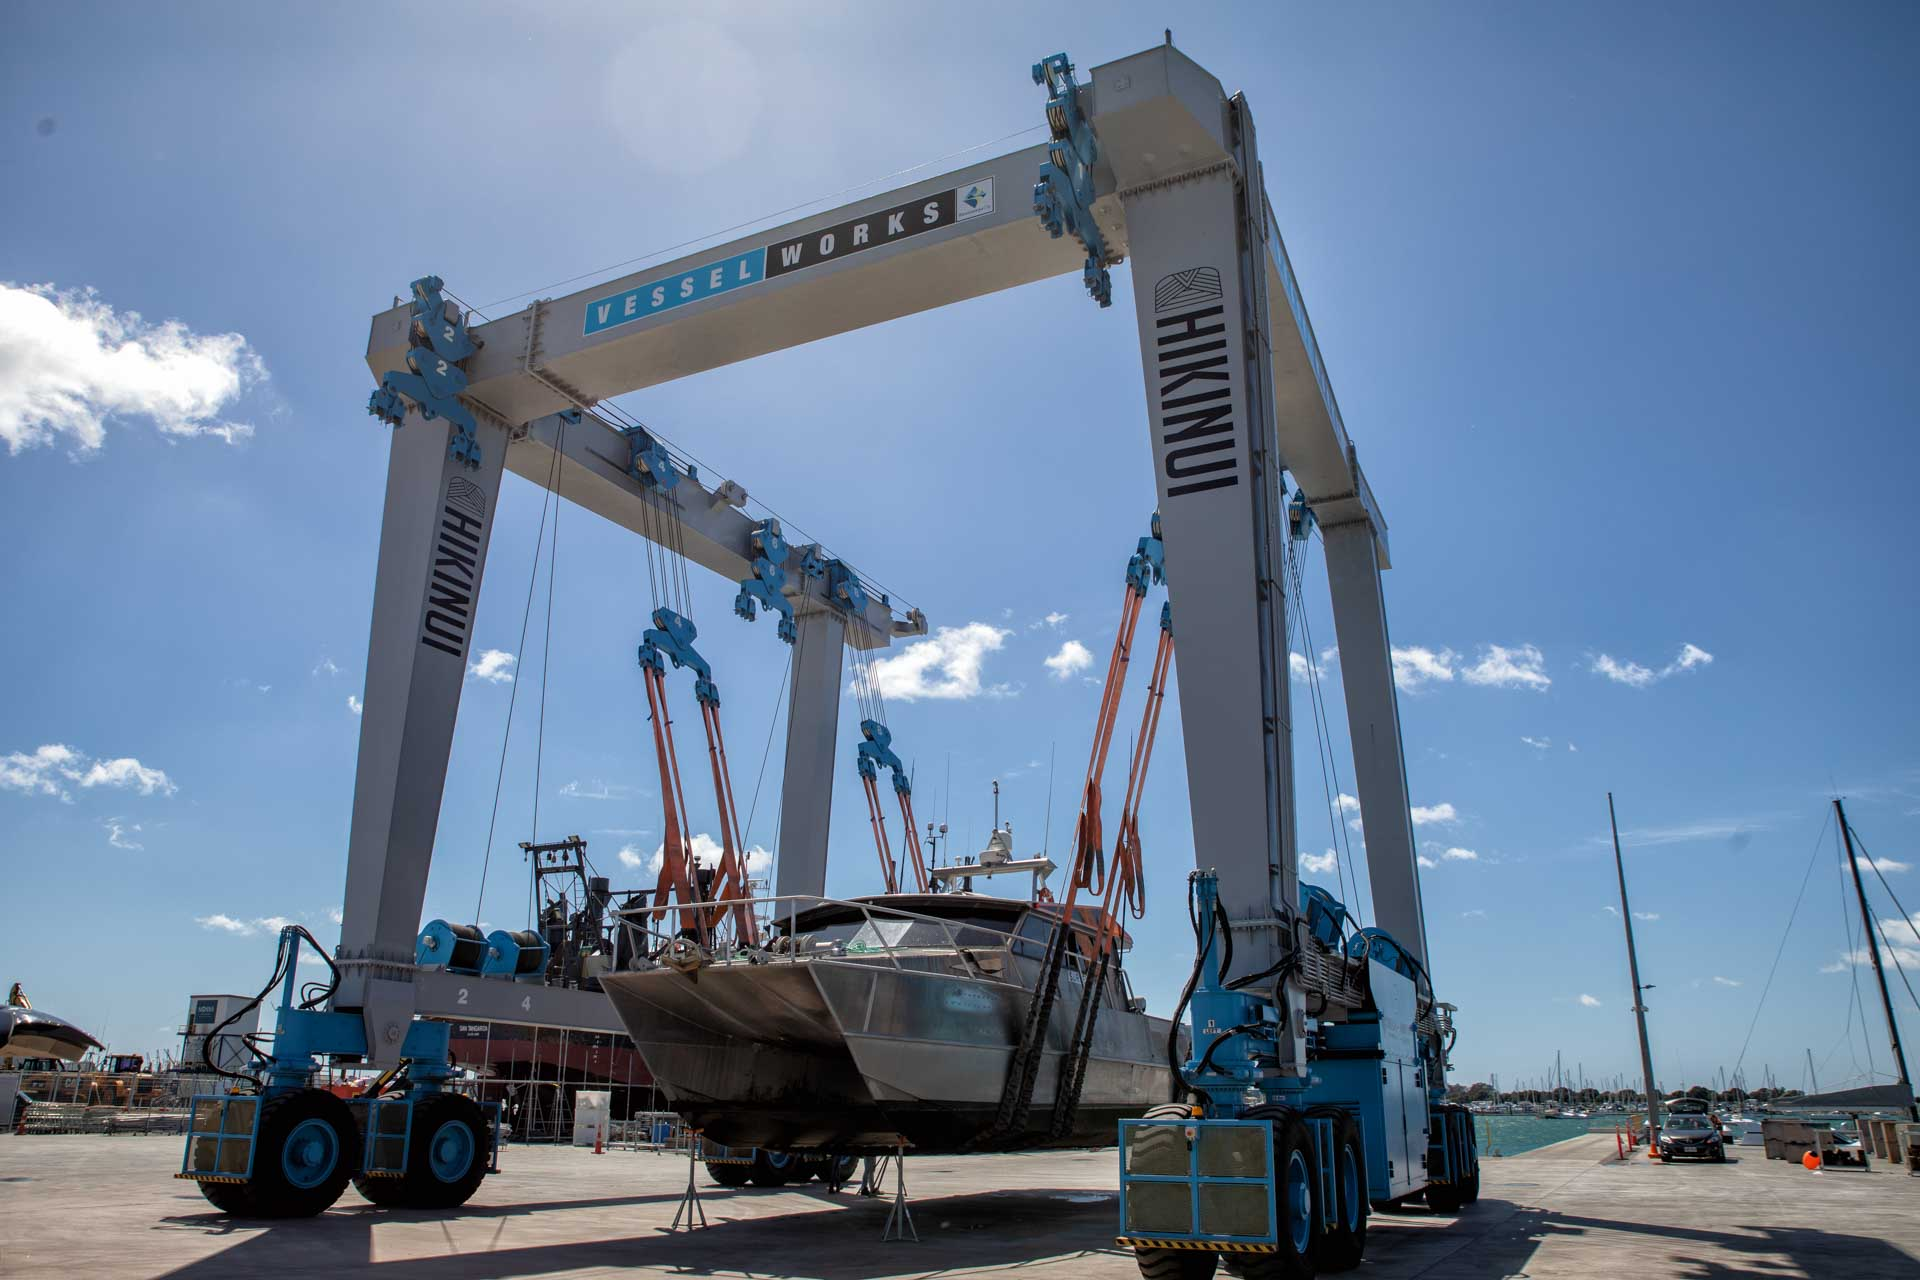 Pacific7 Marine Services based in Tauranga, New Zealand